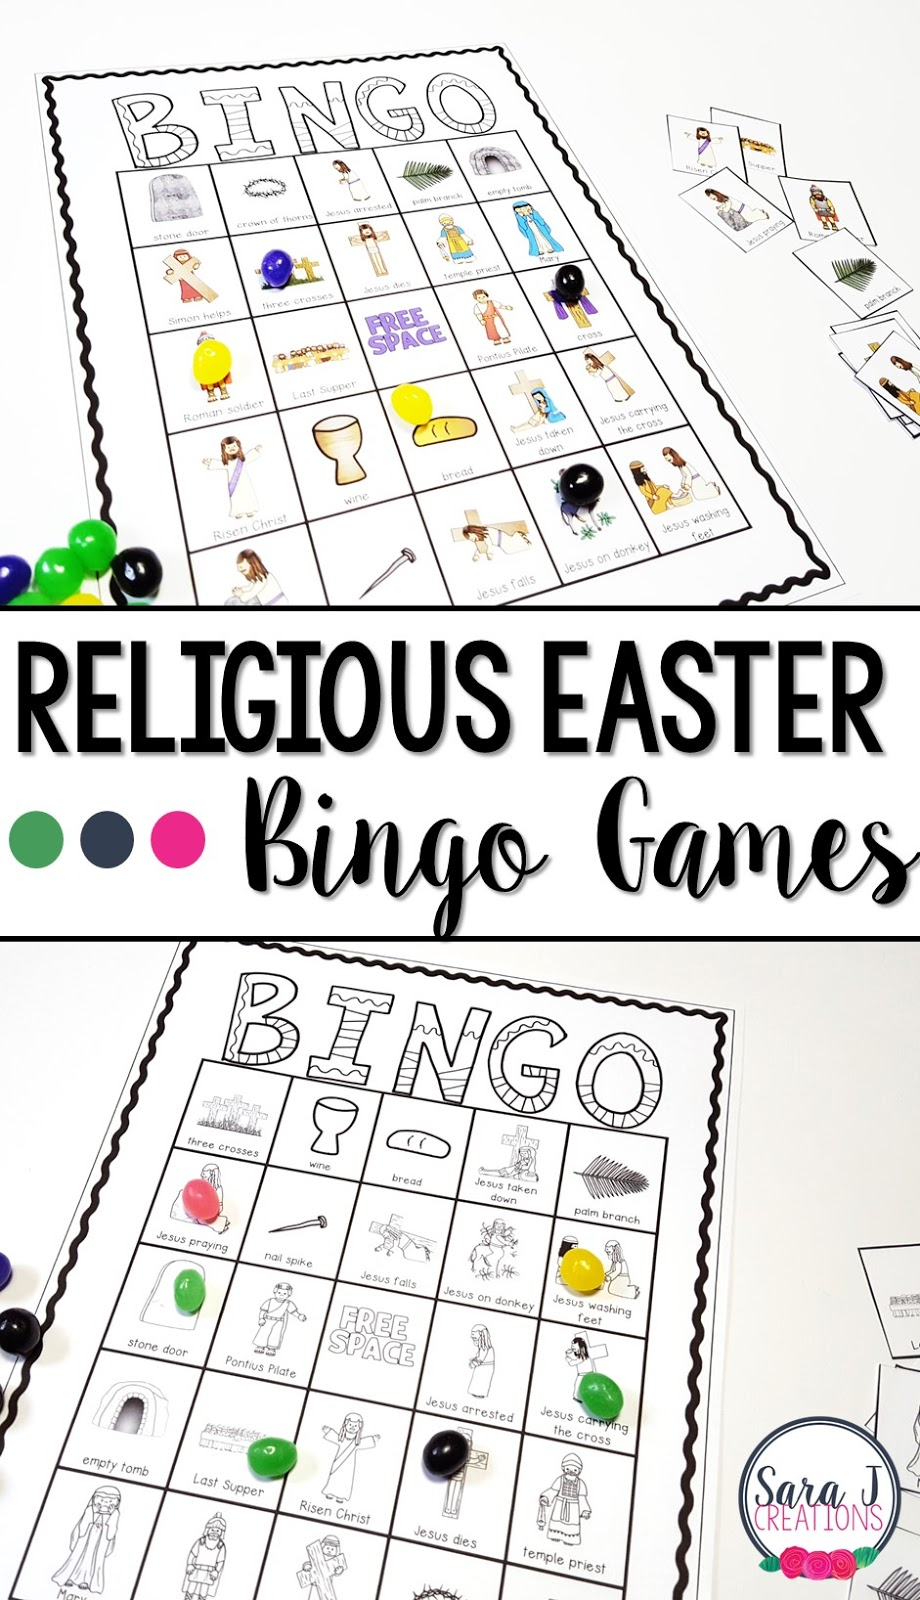 Practice the events of Holy Week with this religious Easter Bingo game. Perfect to play during Lent or Easter celebrations.